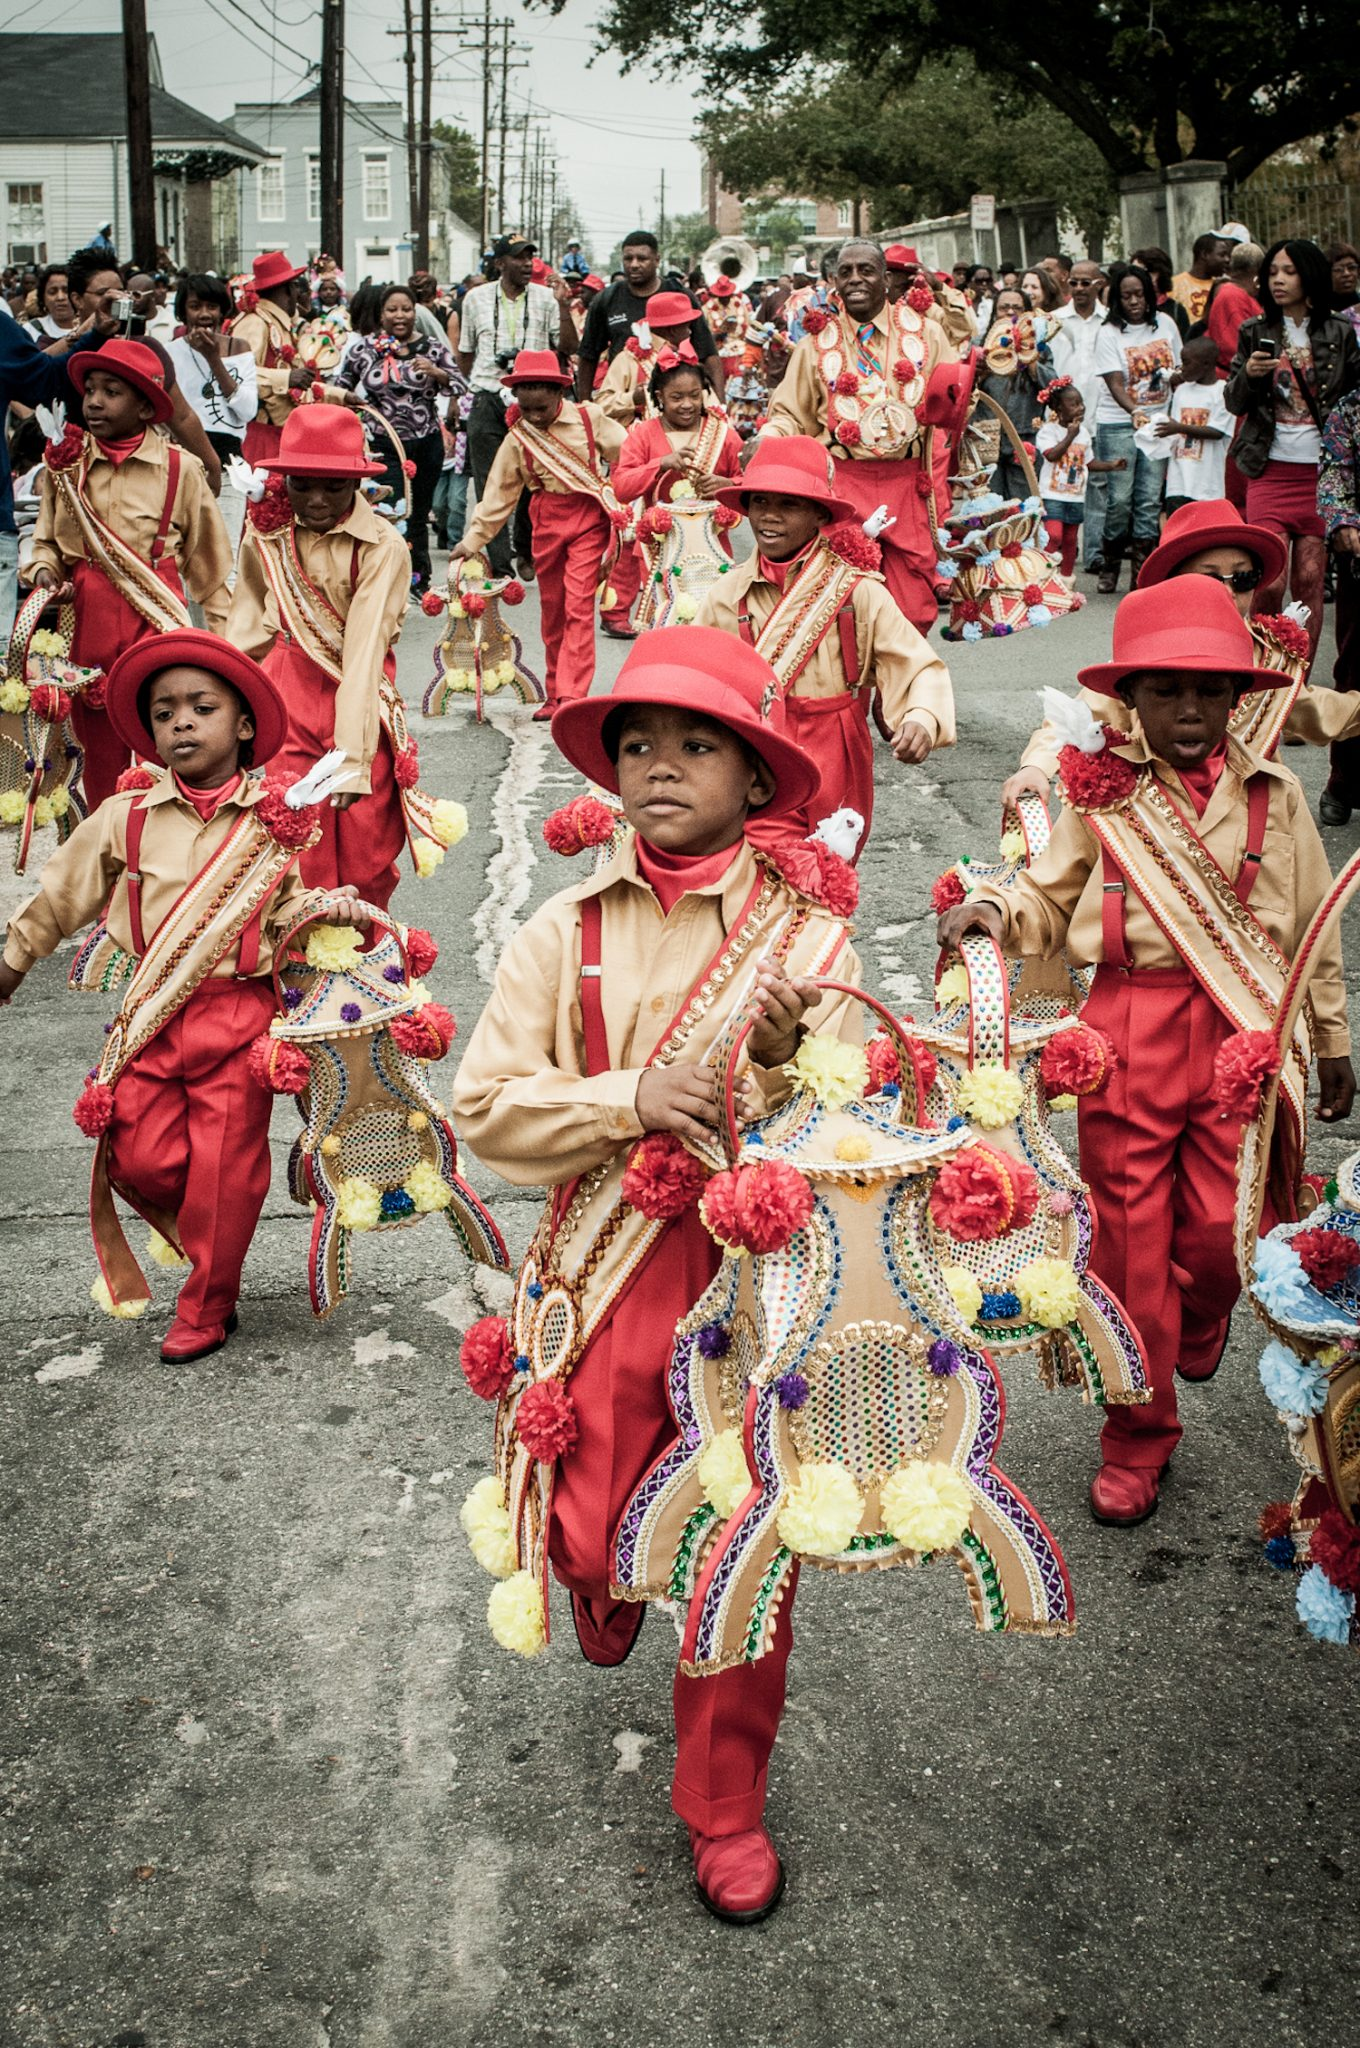 New Orleans Second Line Parades: Photographs by Pableaux Johnson Exhibit